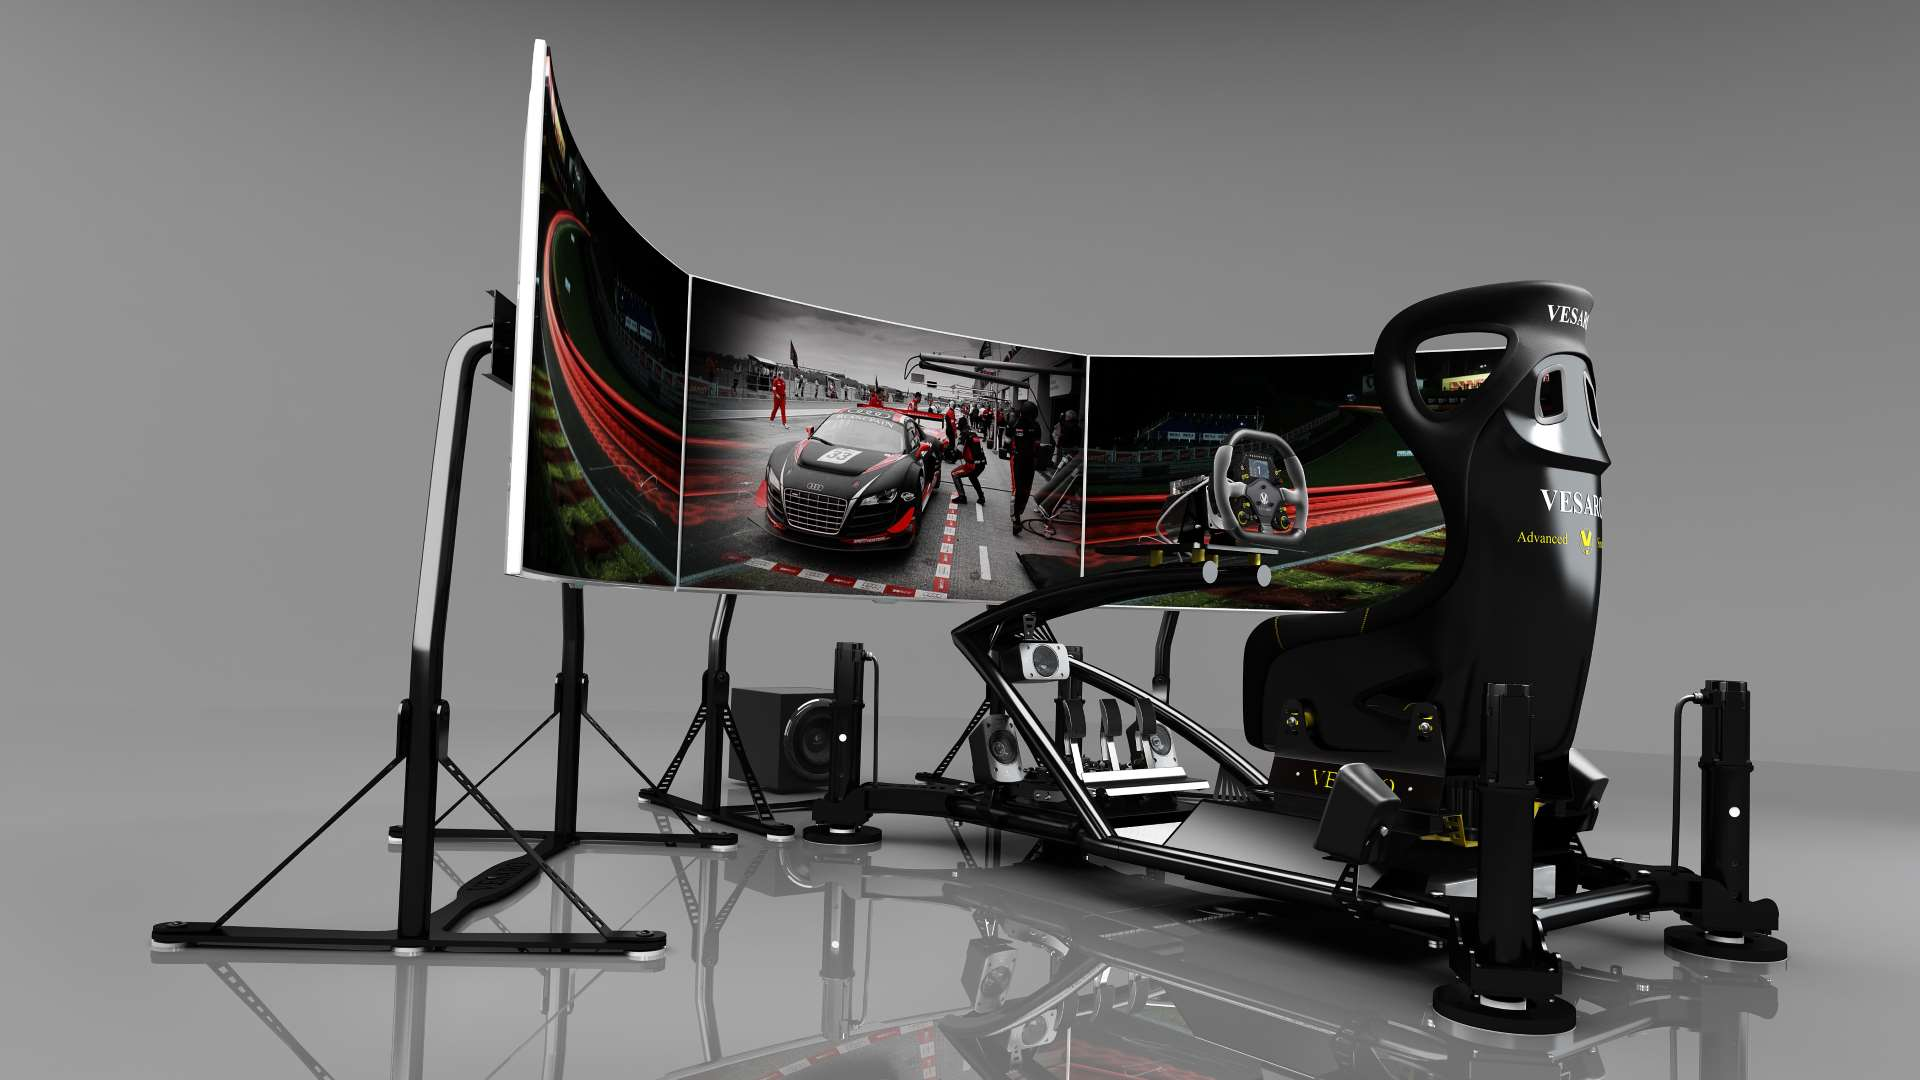 Simulators with virtual reality by Vesaro a racing simulator with gray walls